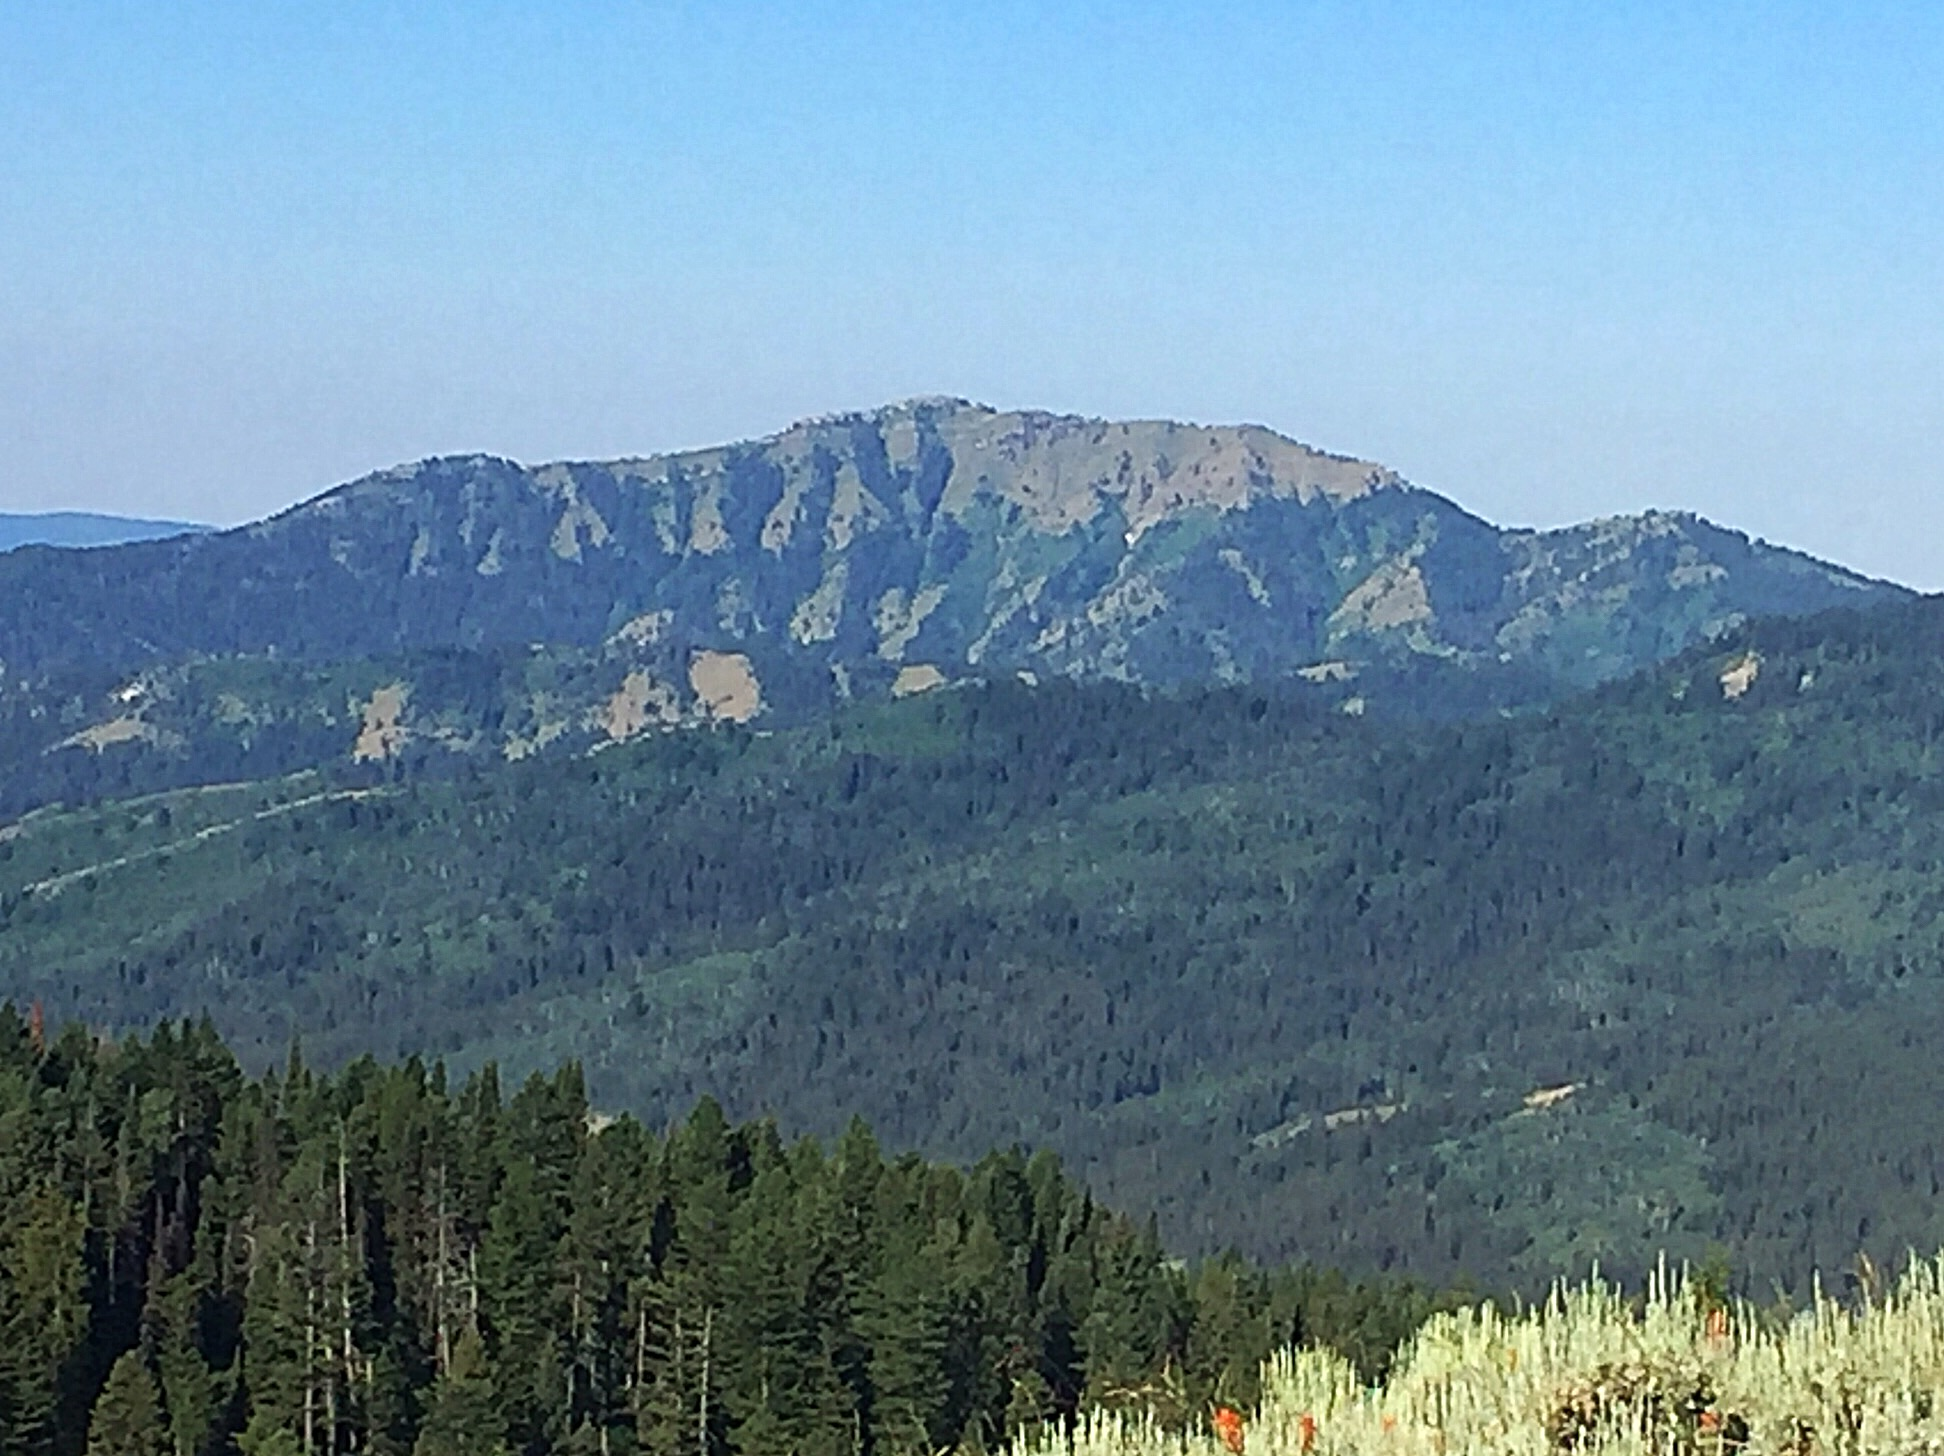 Stouts Mountain viewed from Peak 7800.